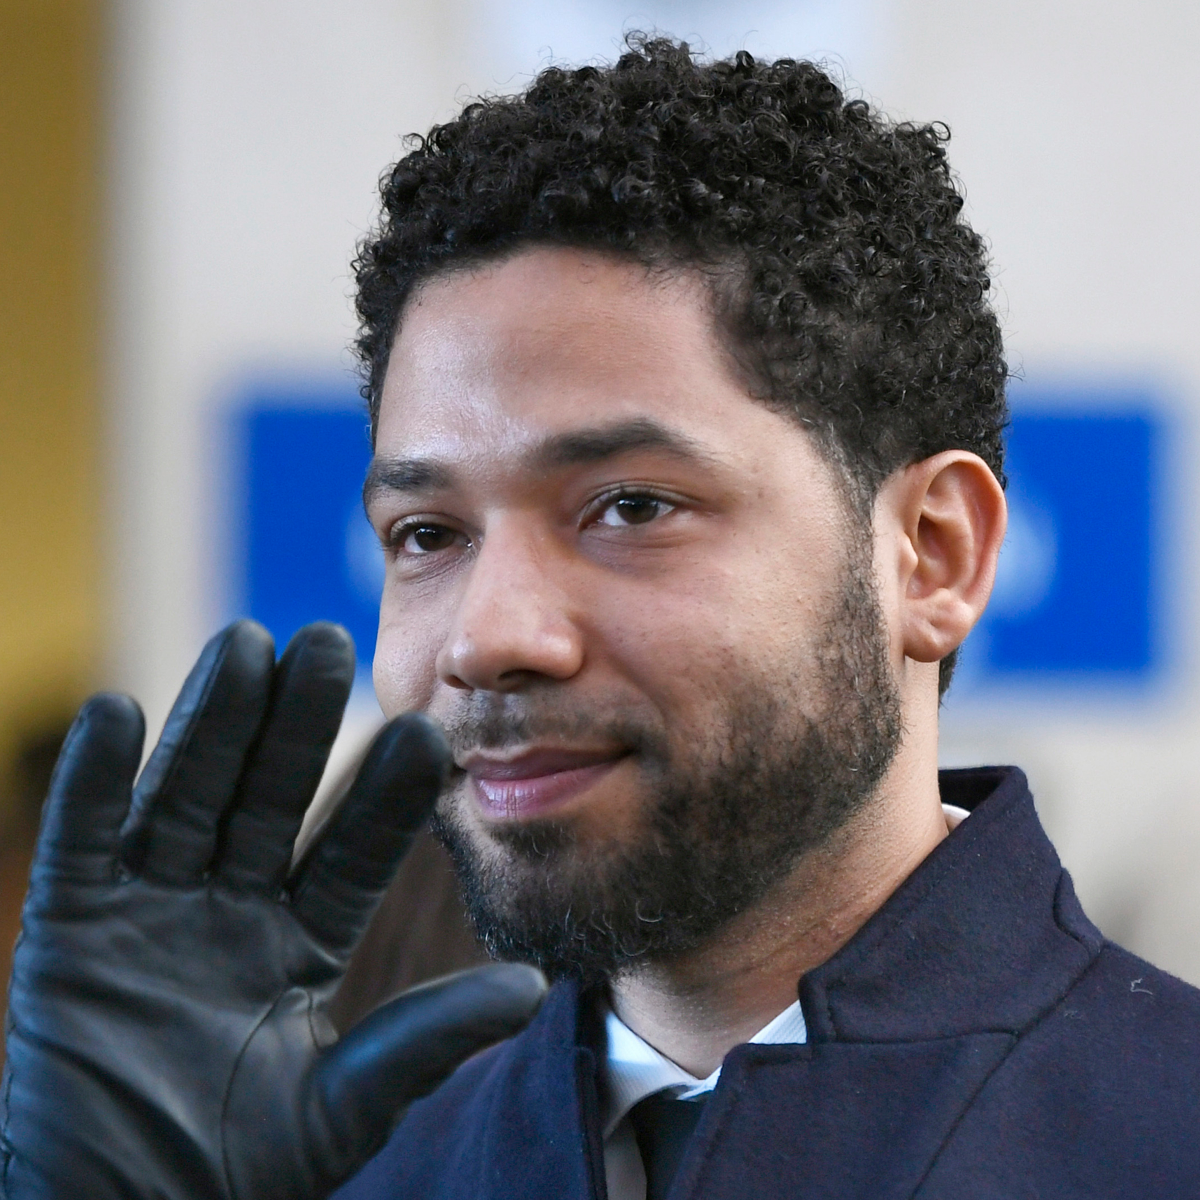 Former U.S. Attorney Named Special Prosecutor To Investigate Handling Of Jussie Smollett Case